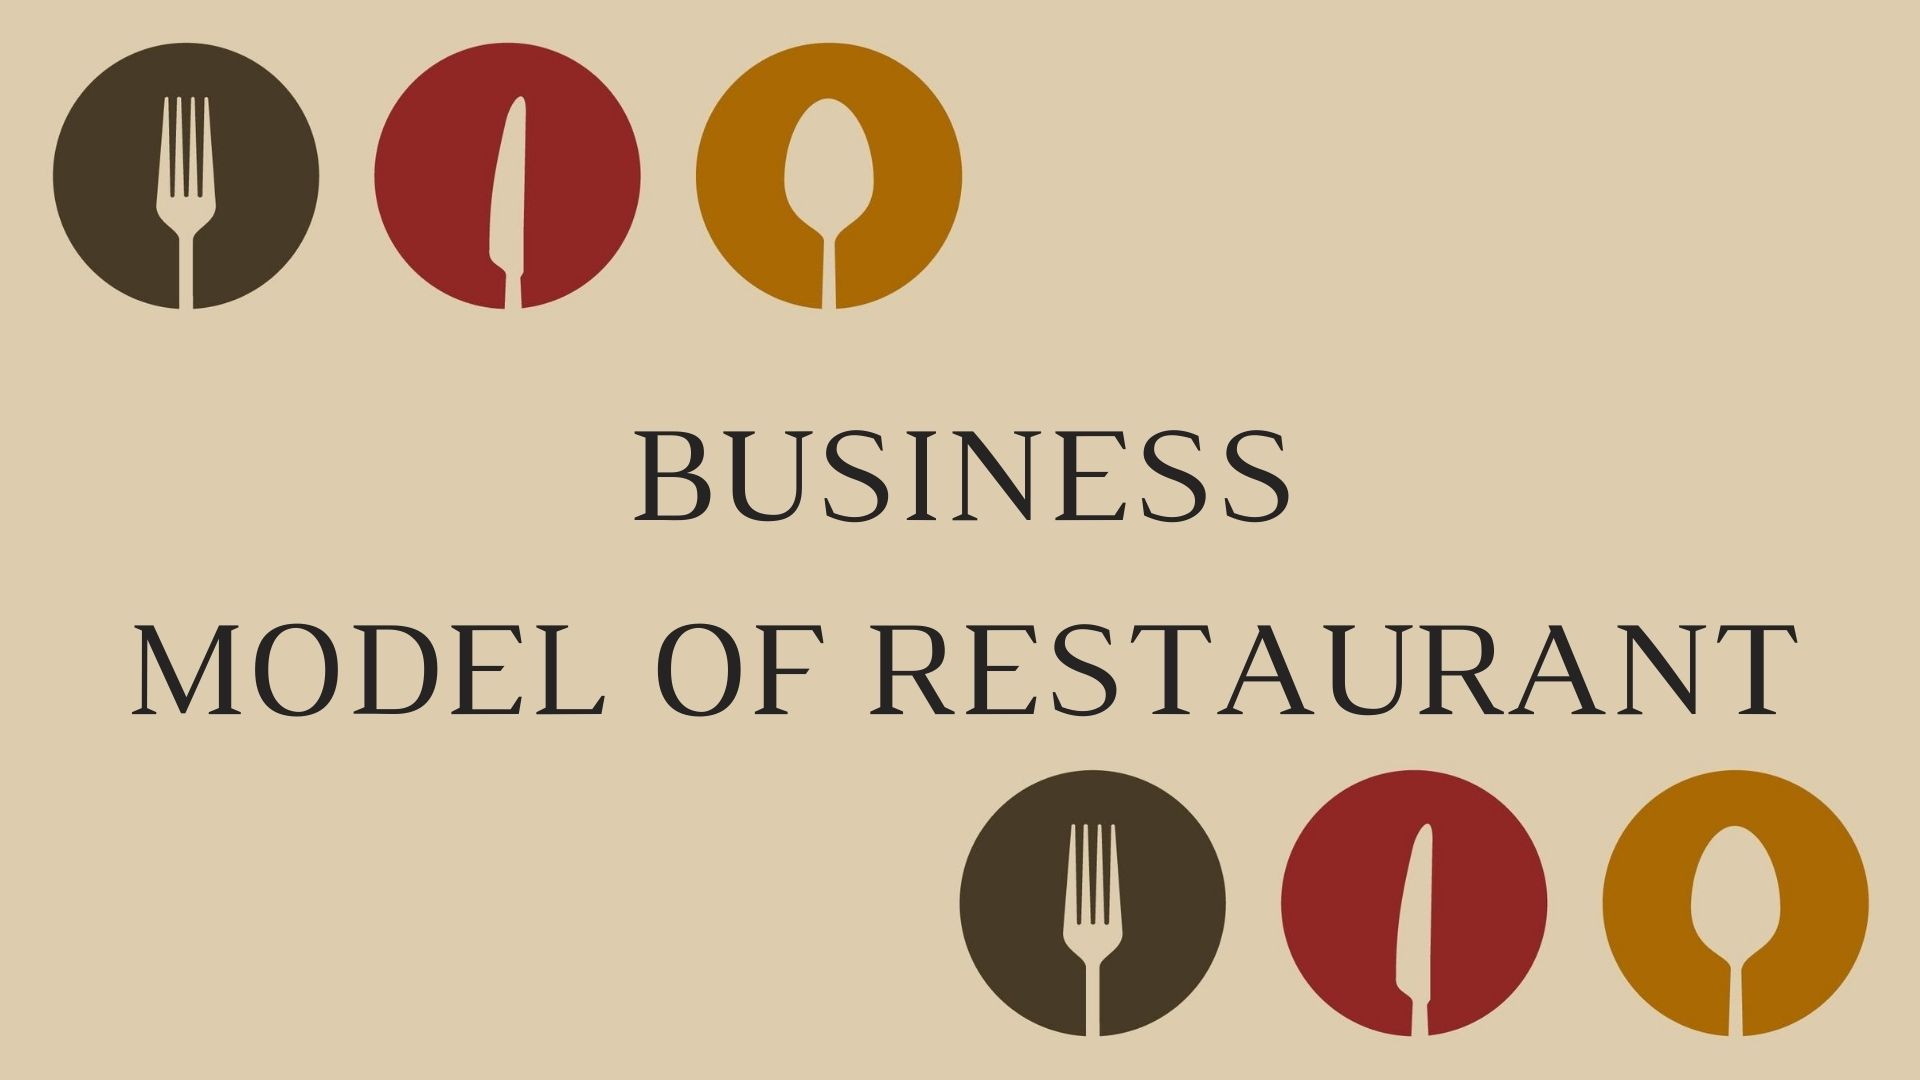 Business model of restaurant